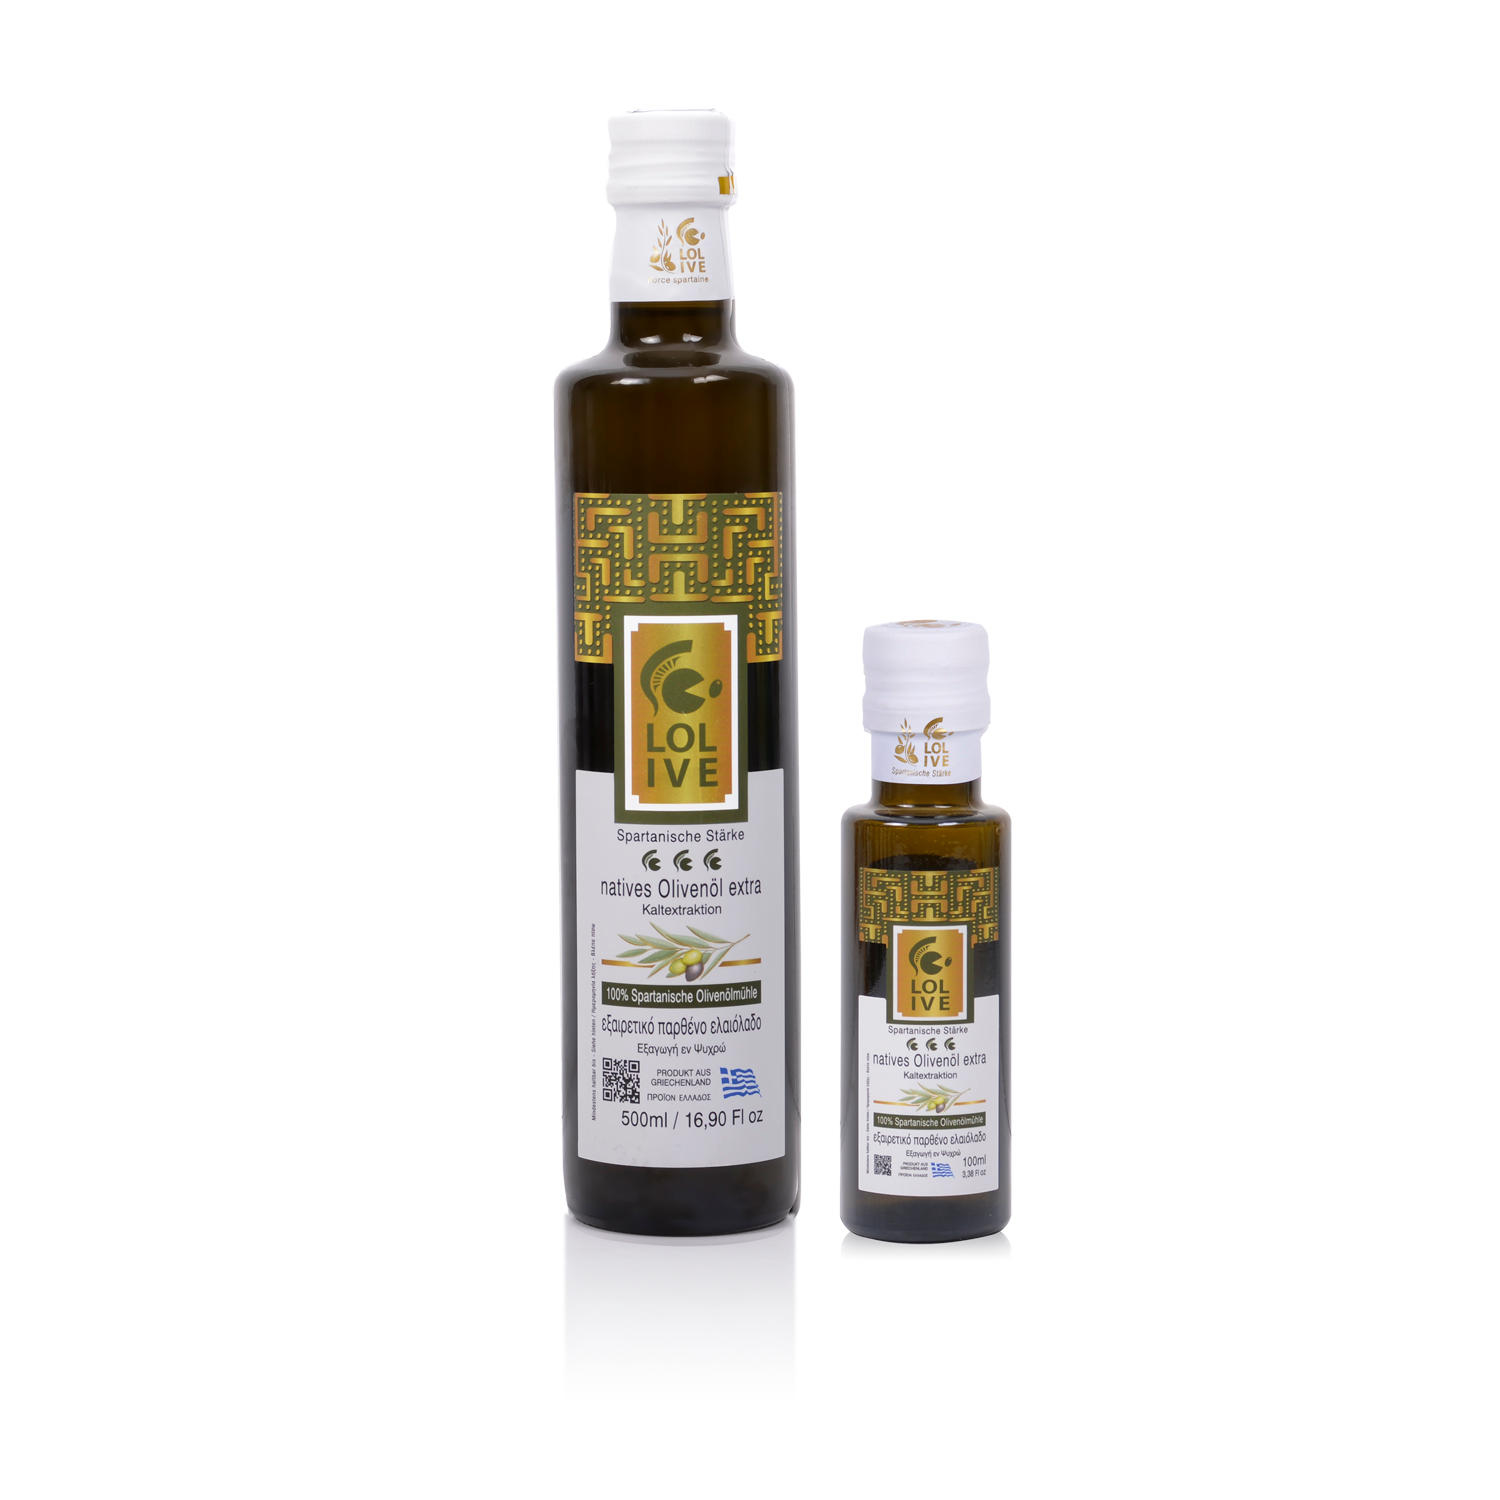 LOLIVE - Skoura Olive Oil Mill - SS3 Family